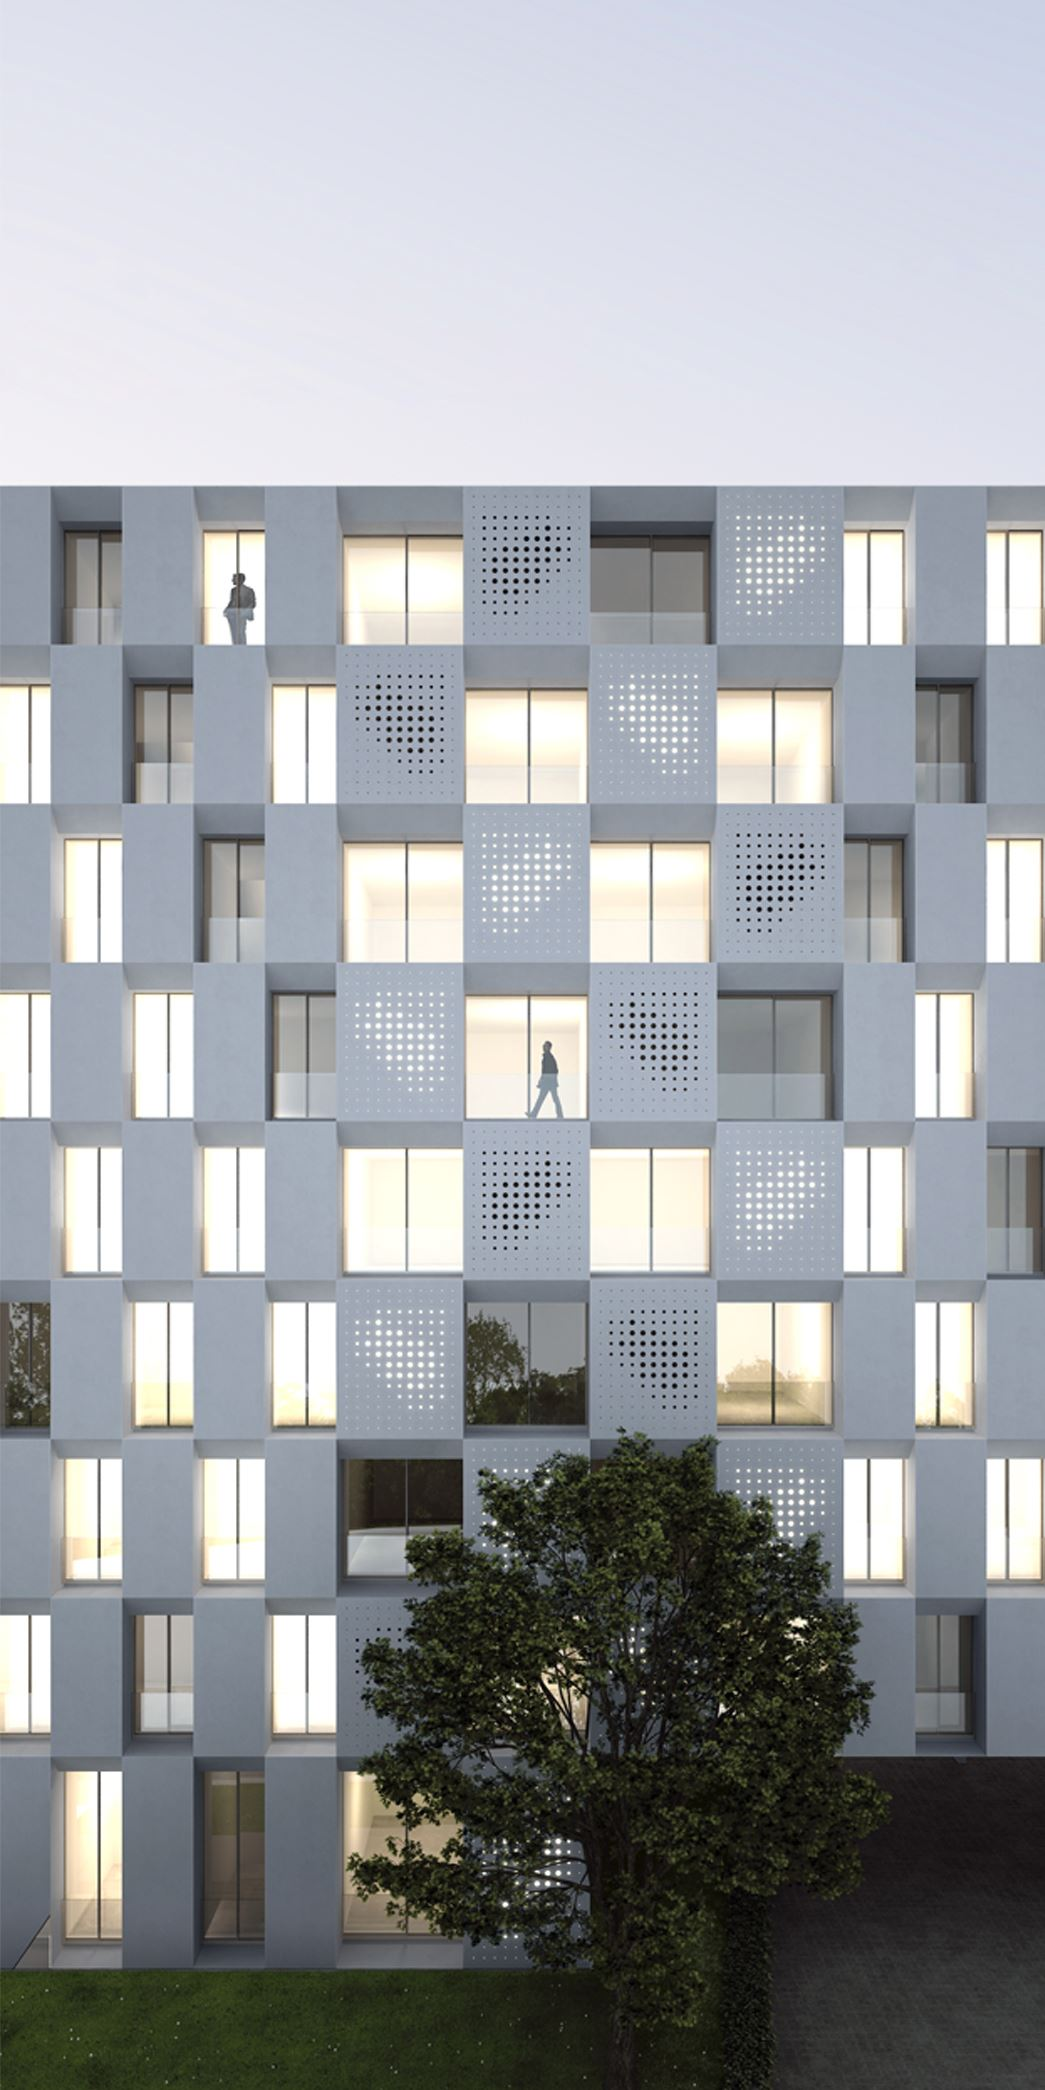 Housing development in Madrid - Gallardo Llopis Architects